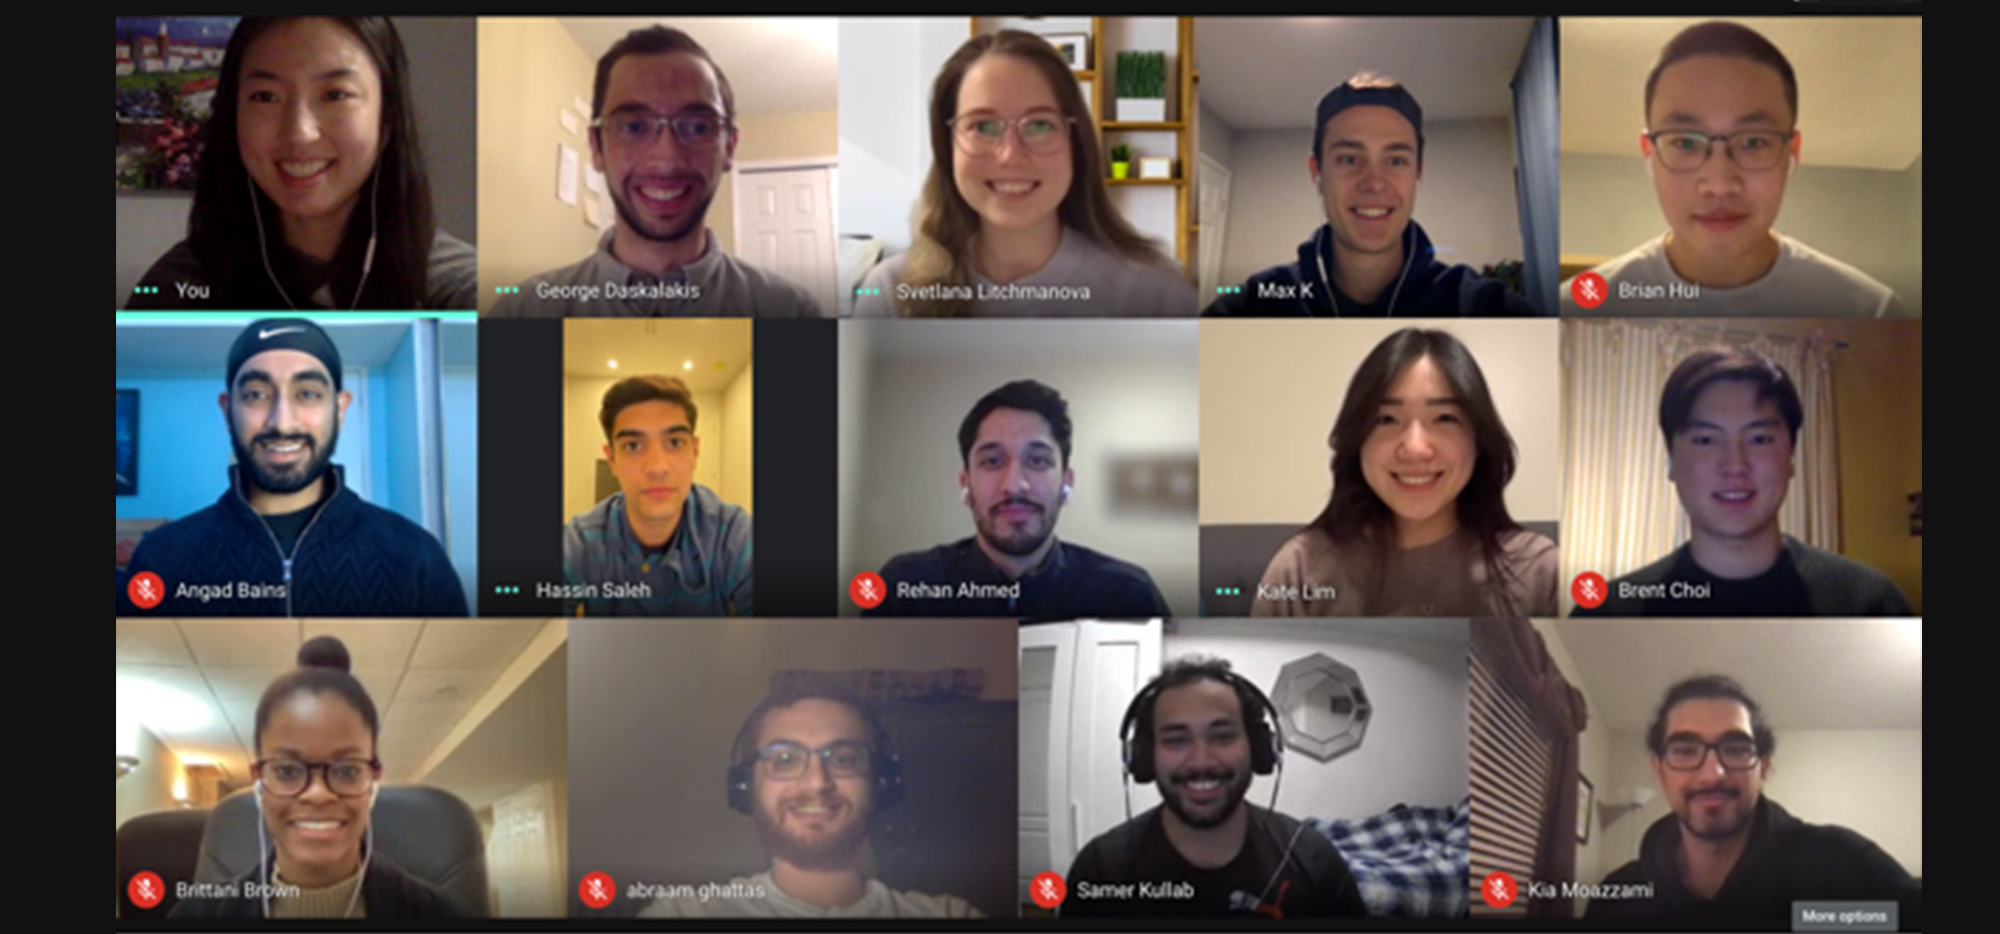 Smiling students on a Zoom call